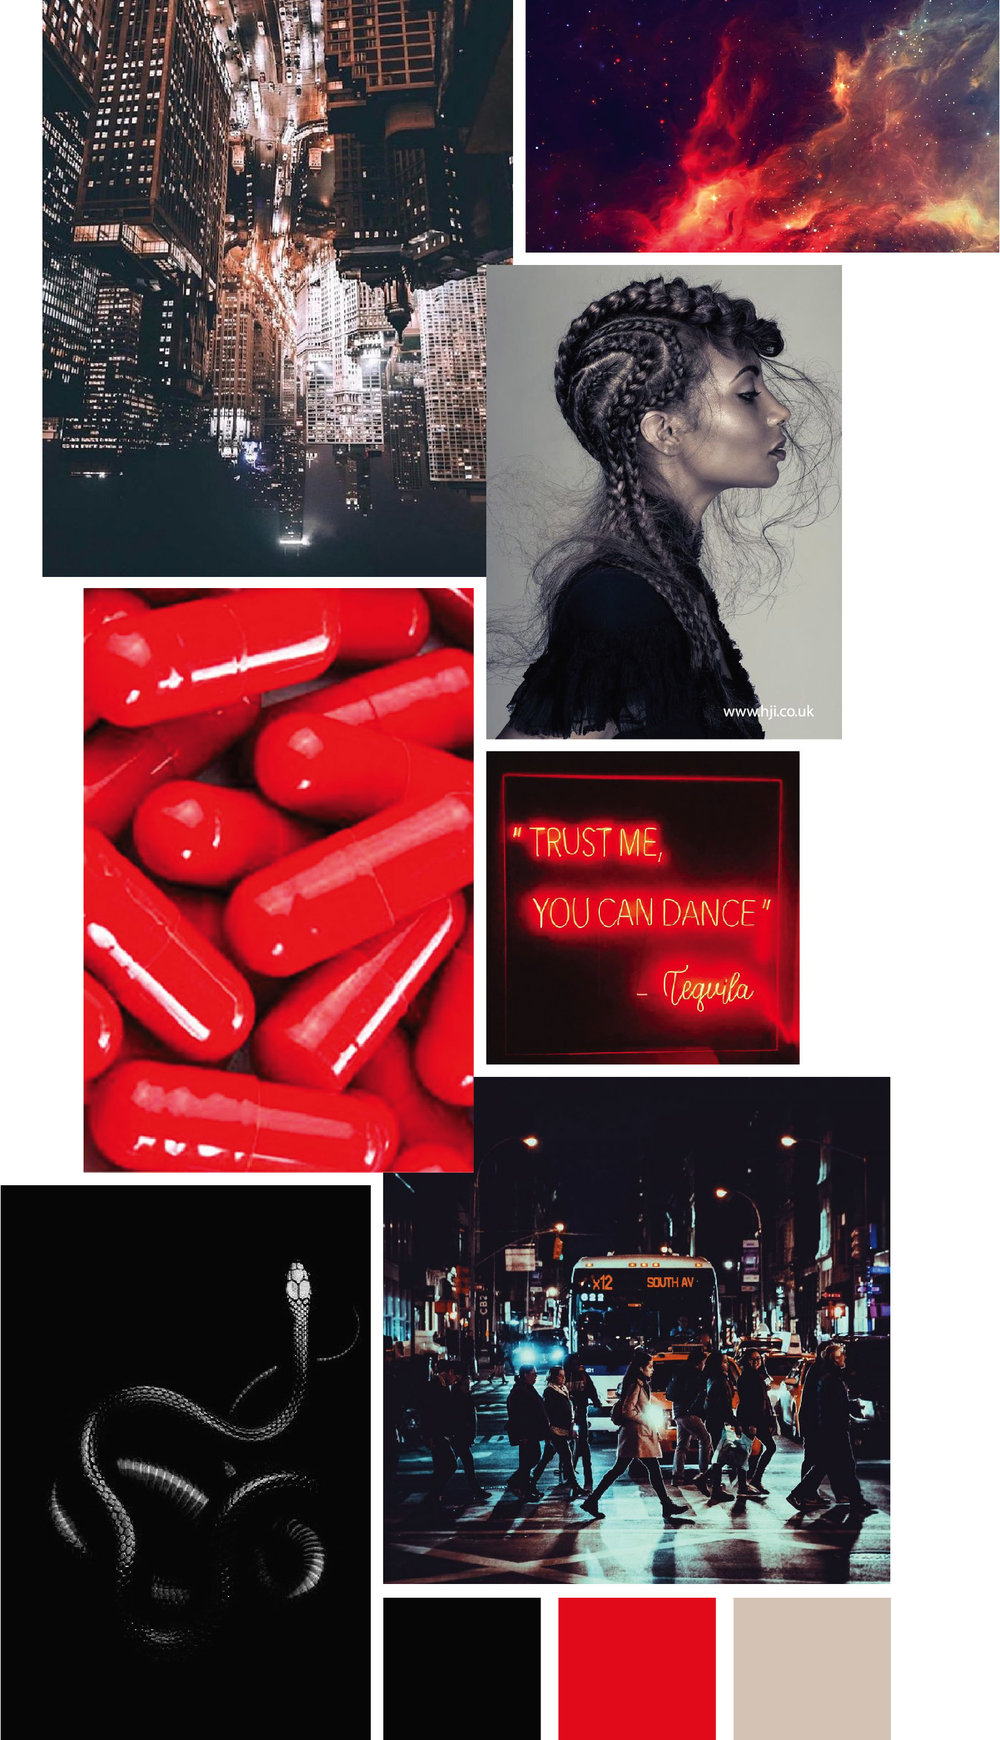 Fashion mood board by designer Delaya Briscoe inspired by night life. Fall style color palette of black, cream and red.